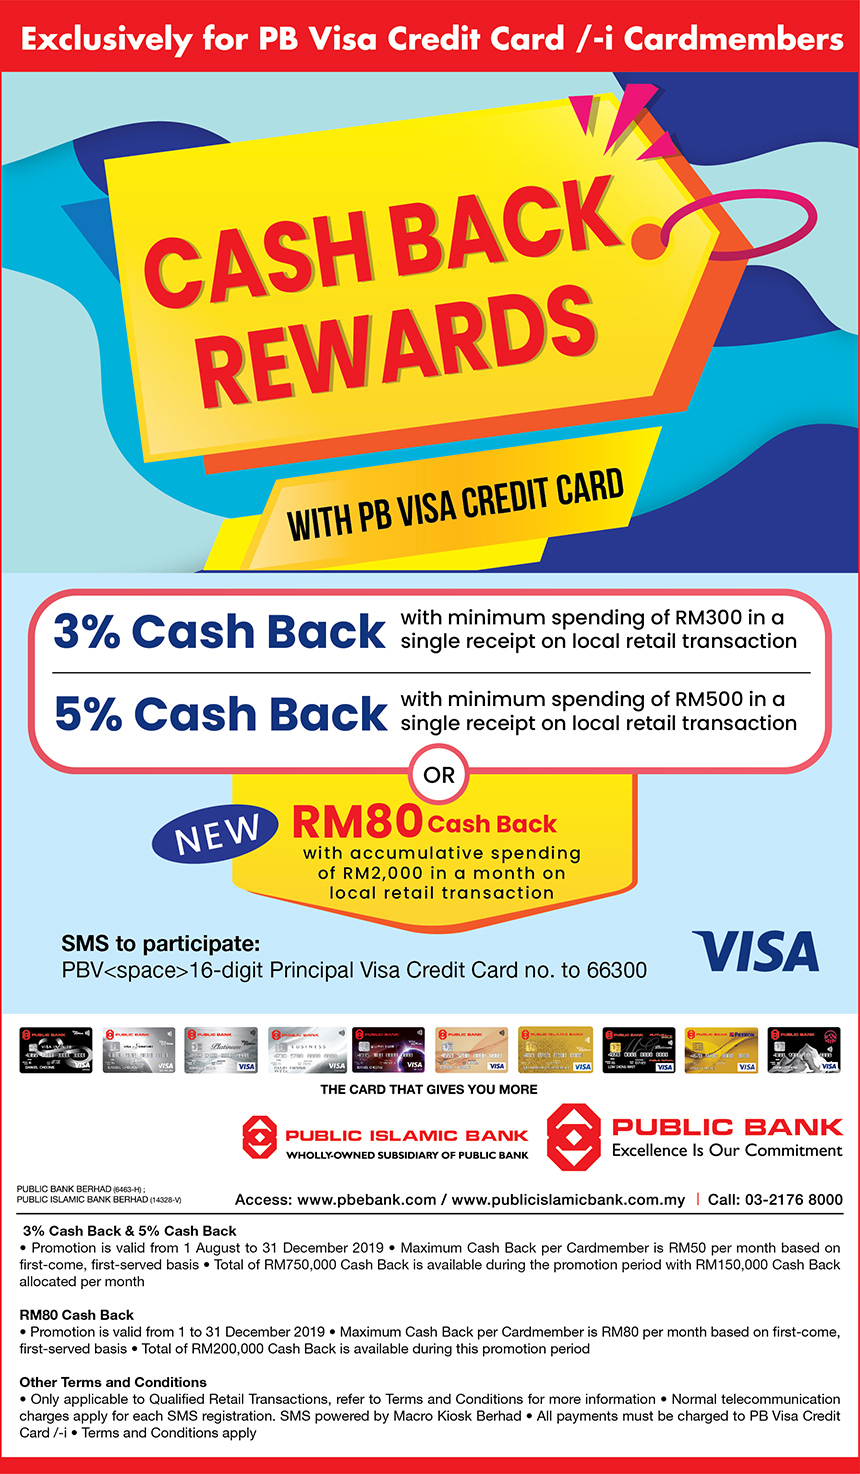 Public Bank Berhad - Cash Back Rewards with PB Visa Credit Card